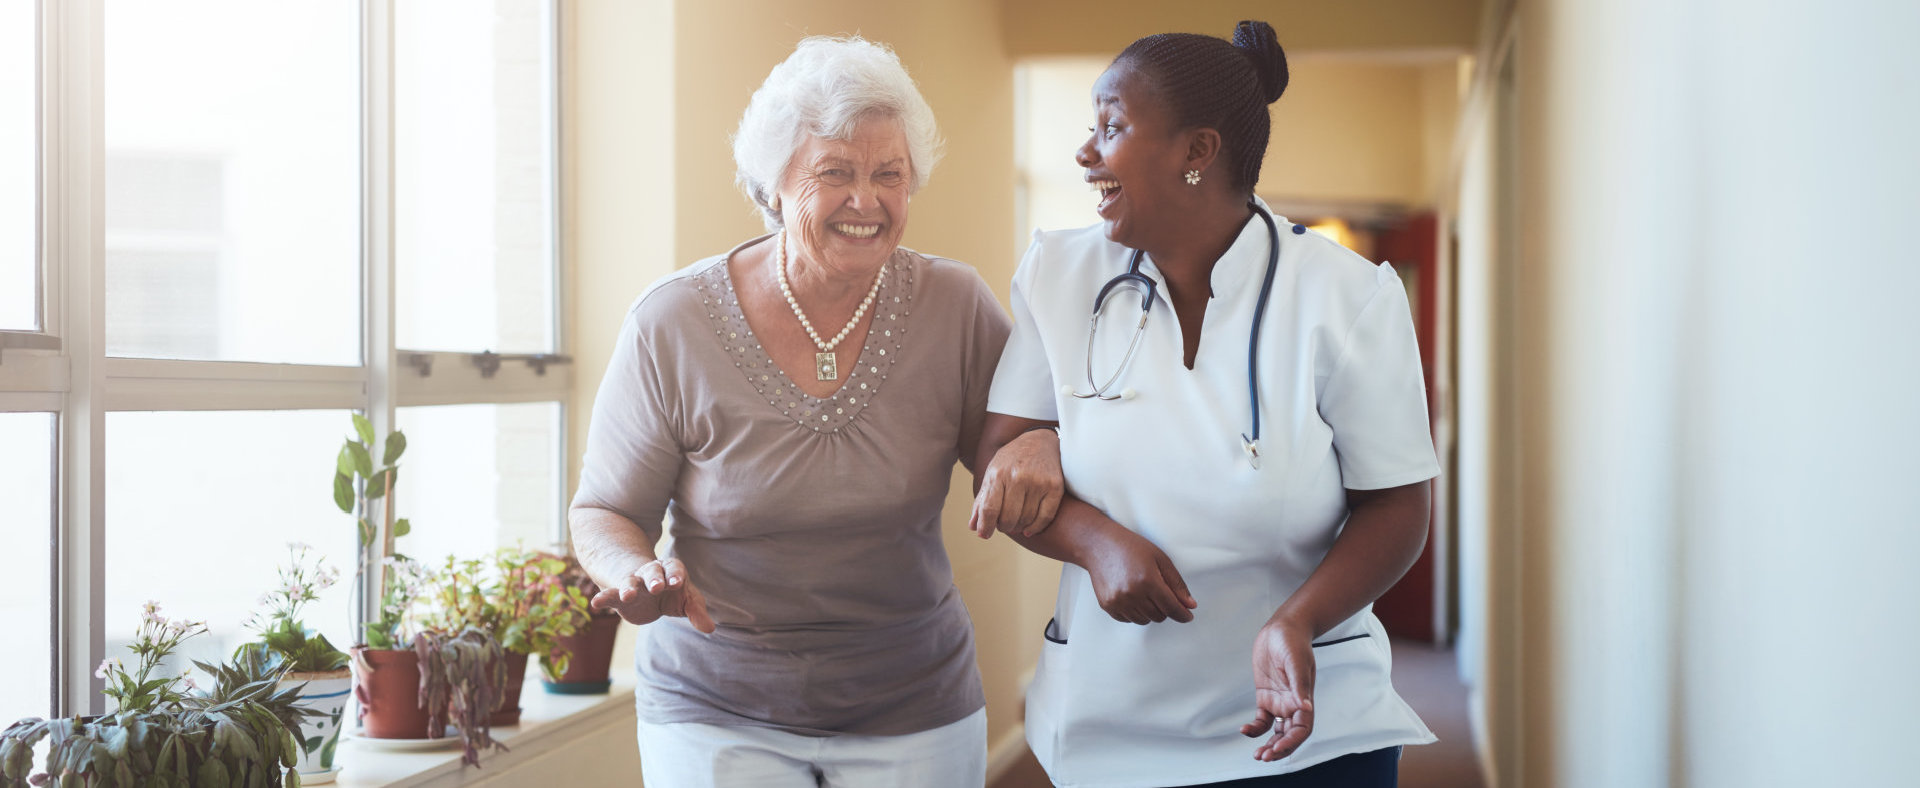 Portrait of happy healthcare worker and senior women walking together